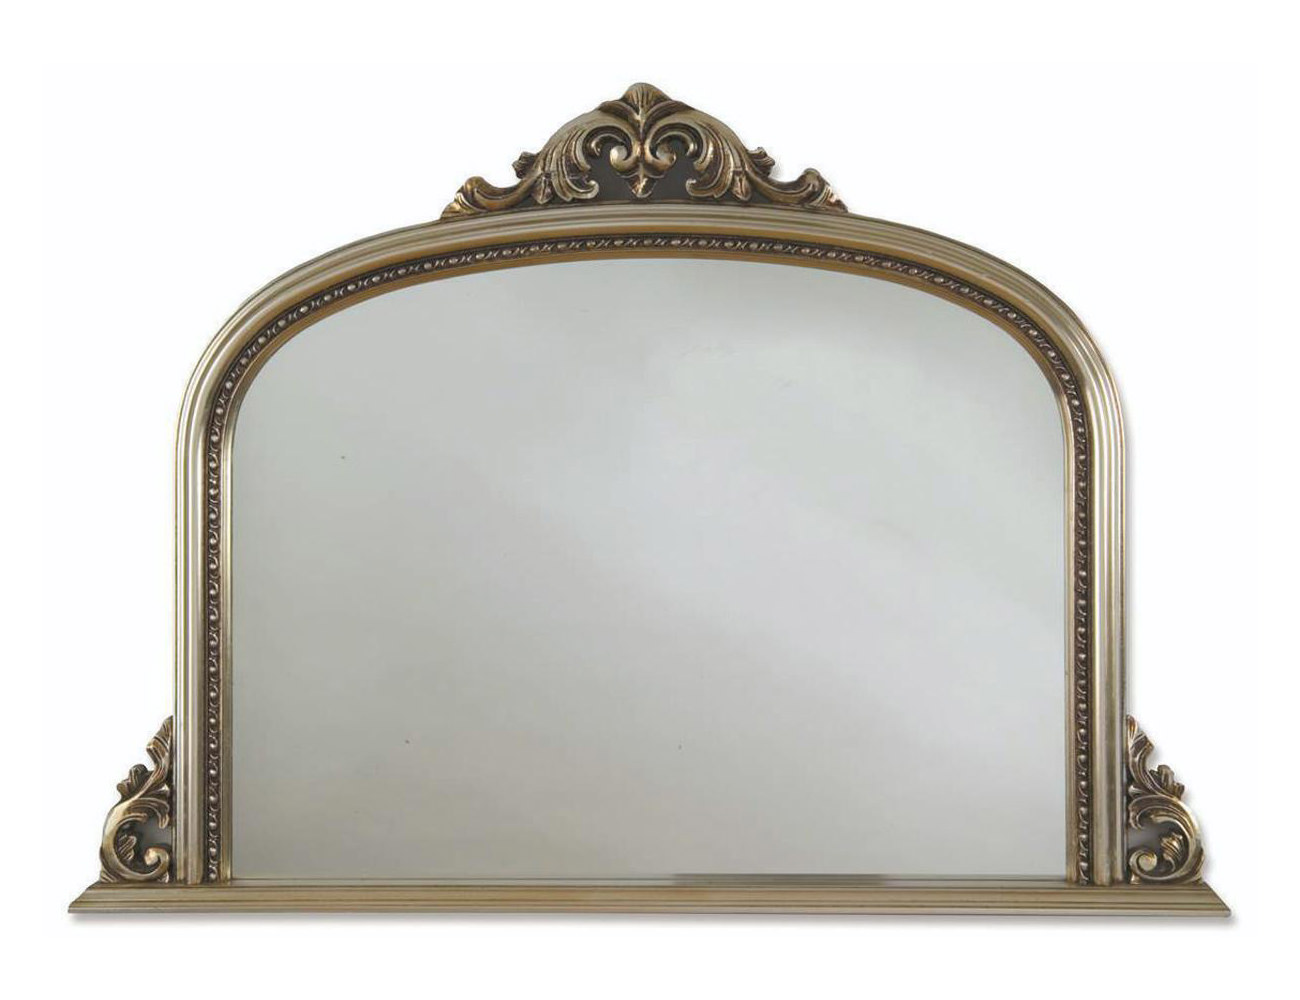 Heritage archway 1270x910mm champagne silver wooden framed for Silver framed mirror